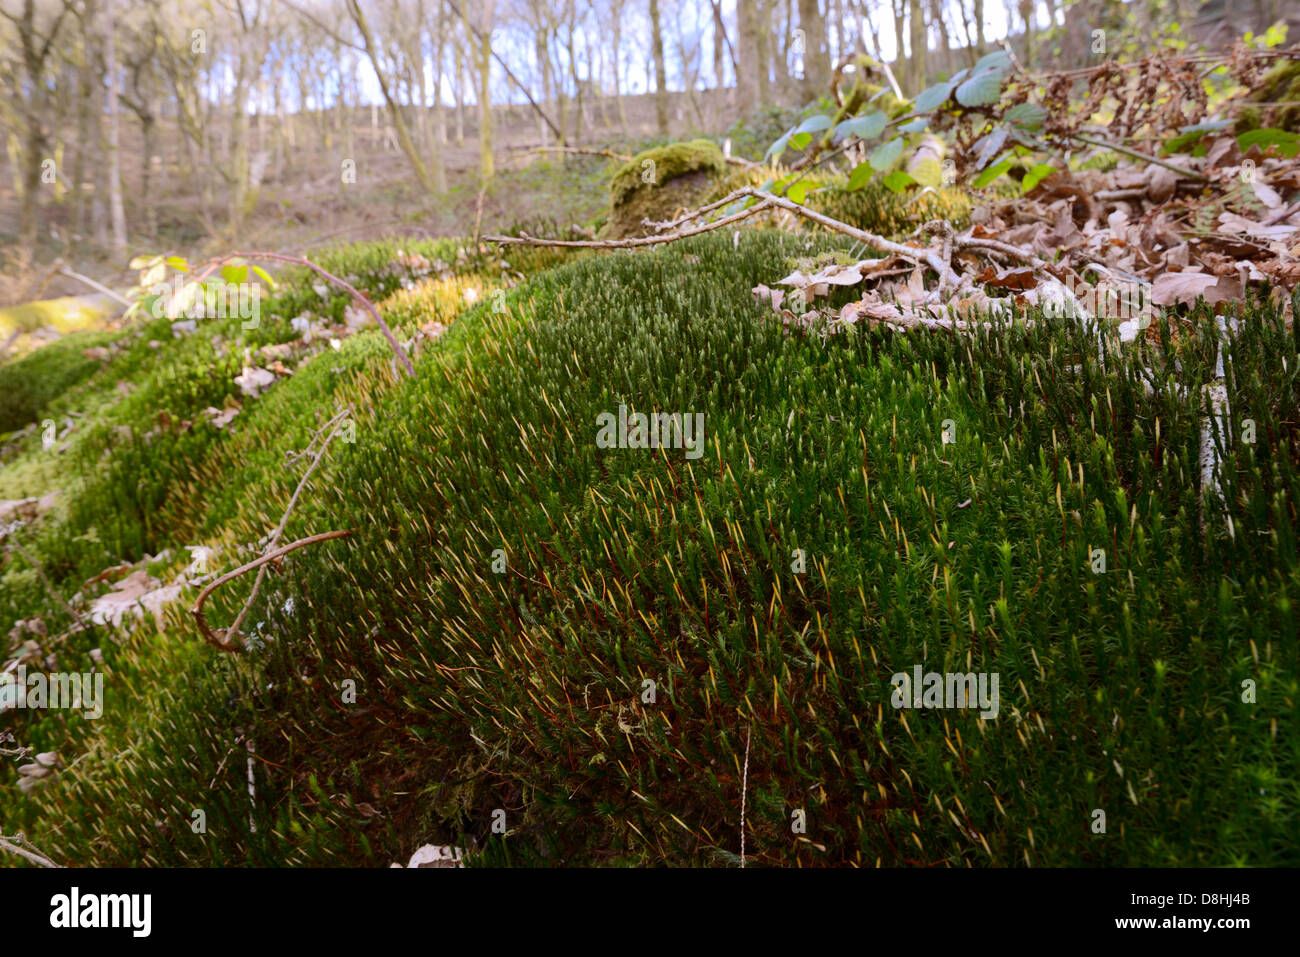 Polytrichum moss growing in broadleaved deciduous woodland recently cleared of conifers, Wales, UK - Stock Image